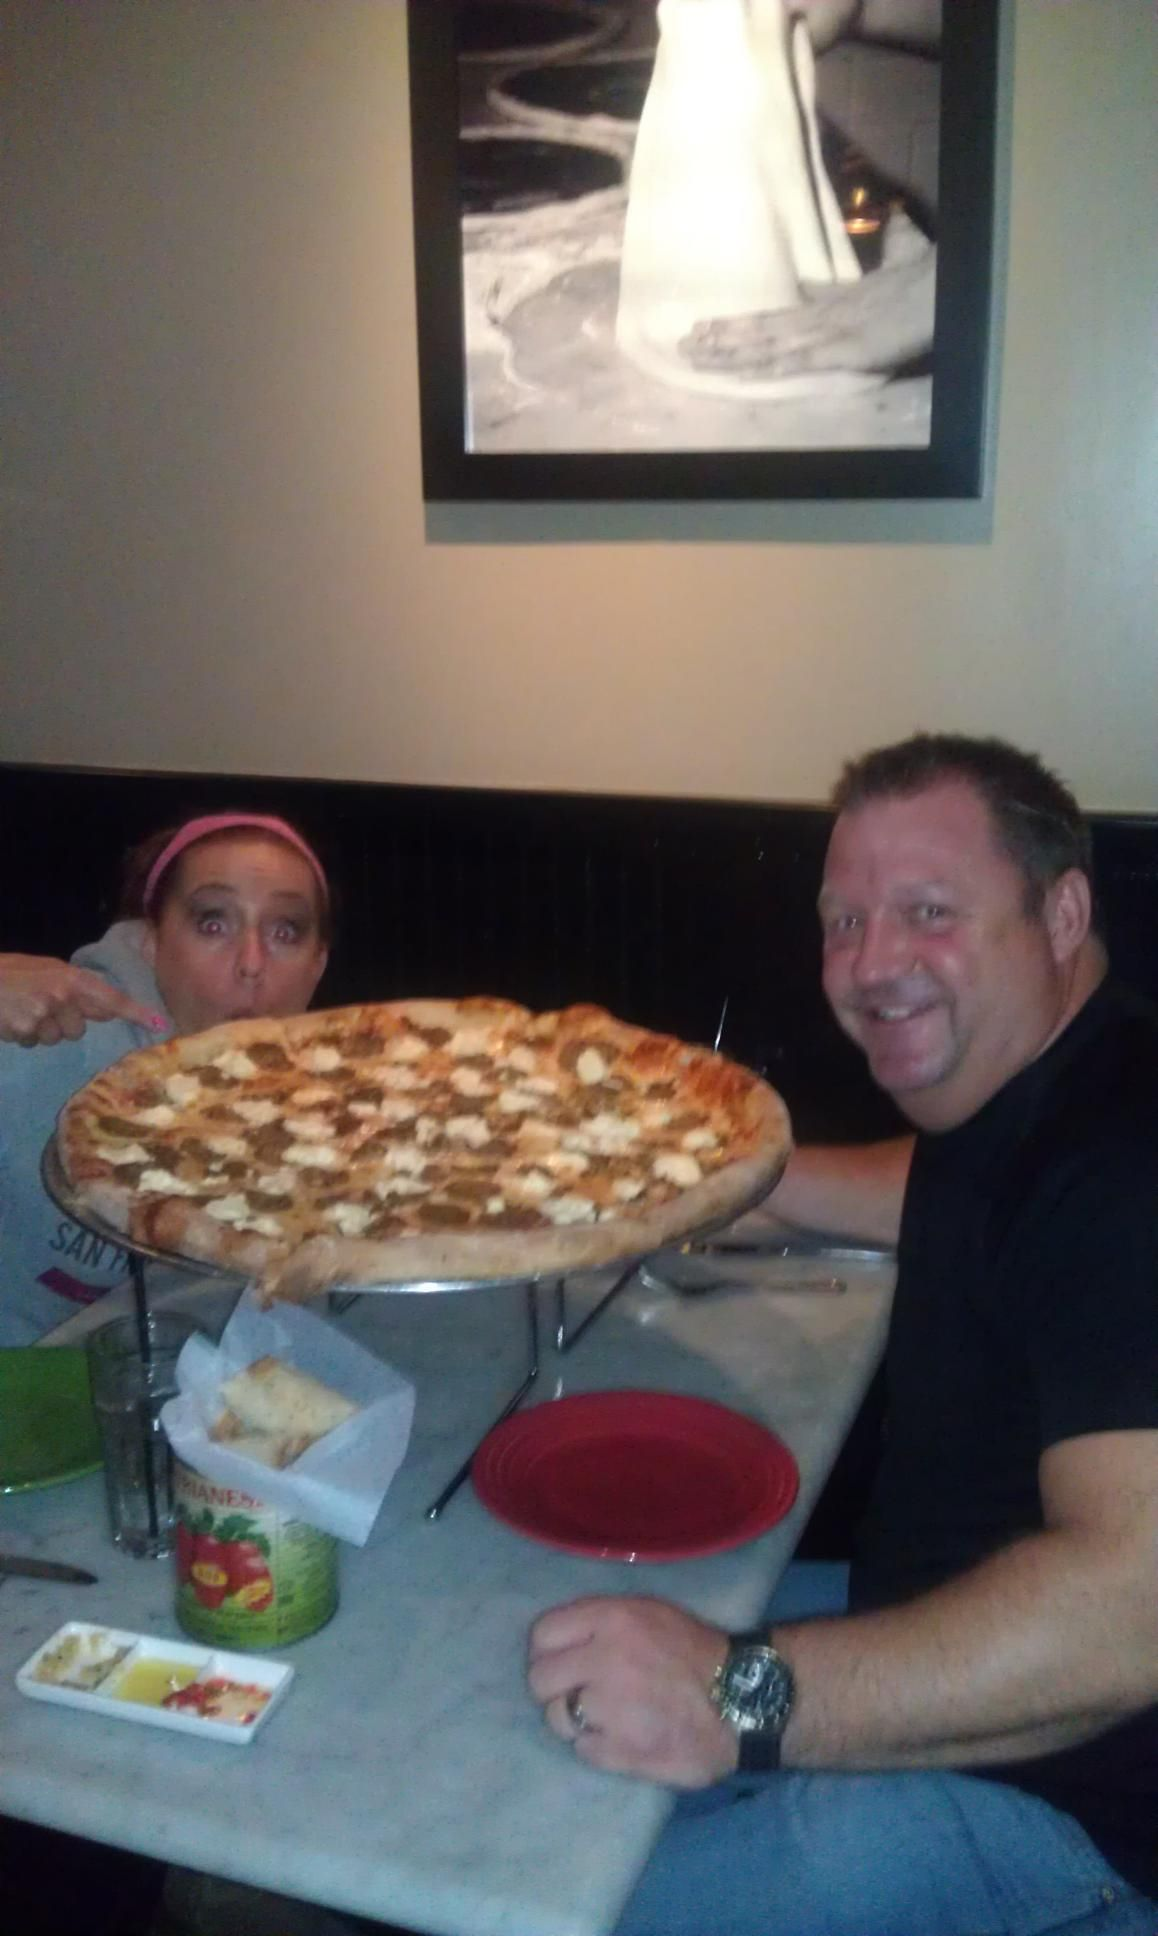 Biggest & best pizza ever!